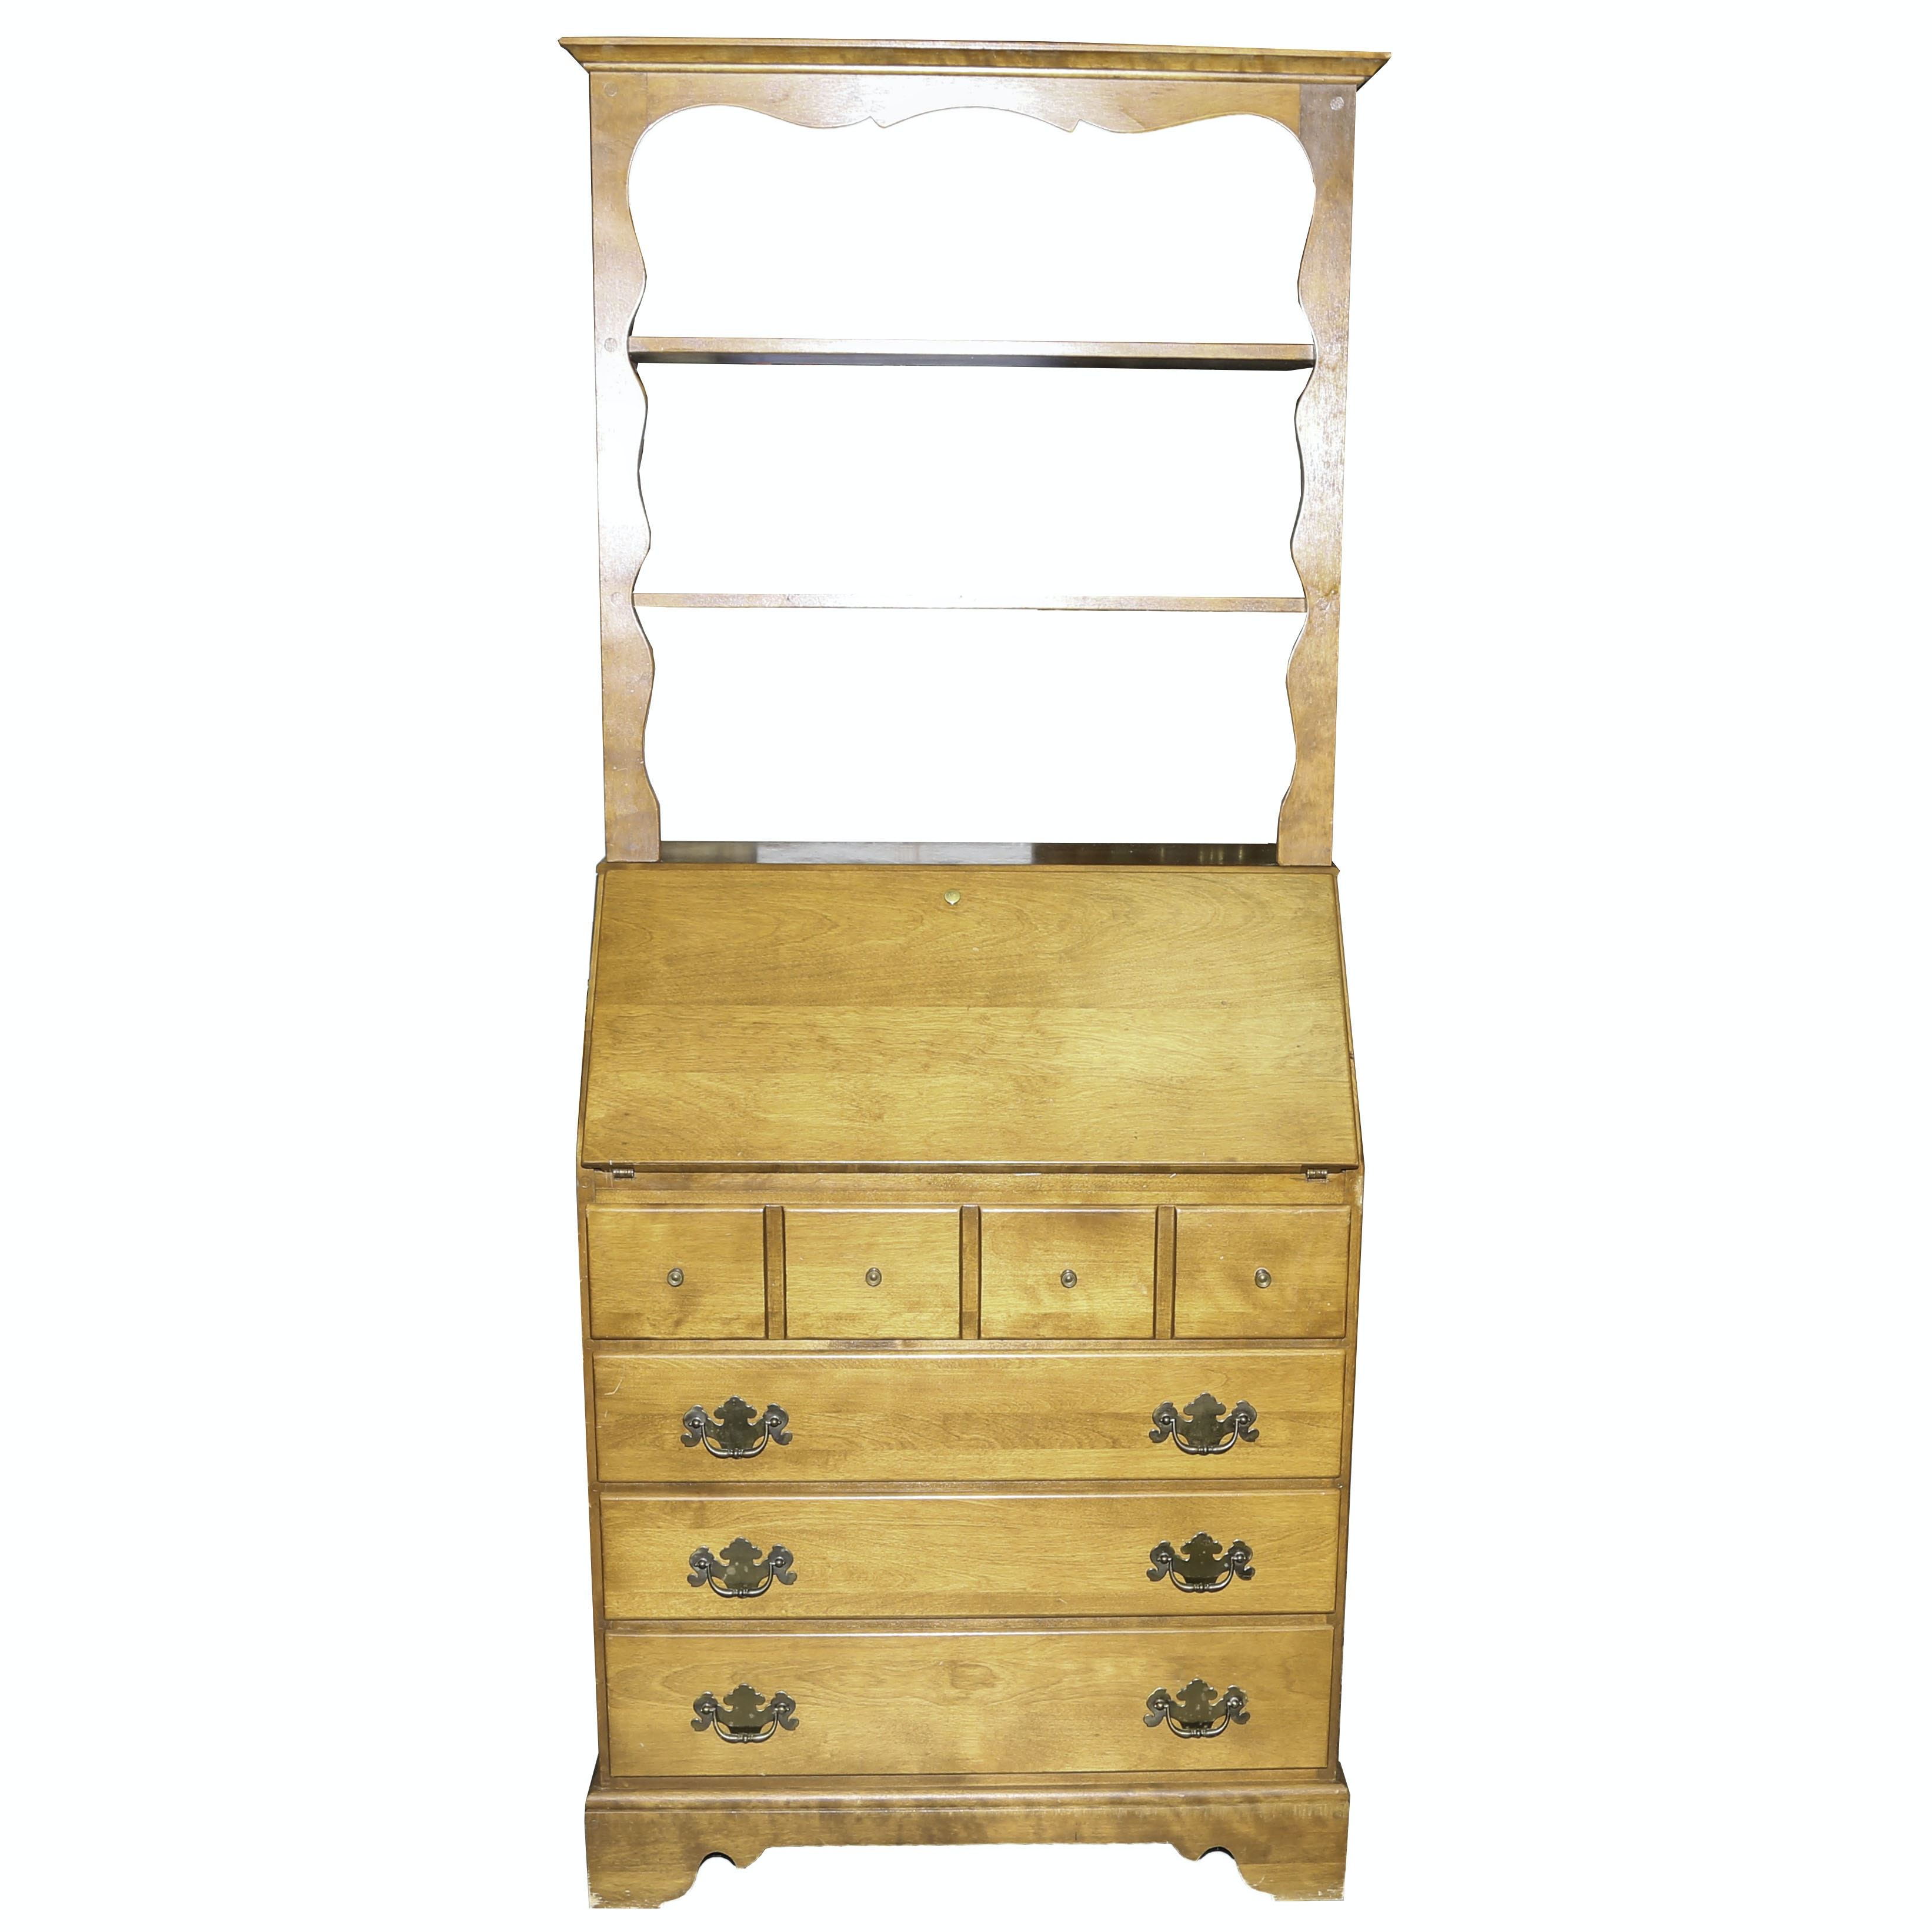 Colonial Revival Style Slant Top Secretary from Ethan Allen